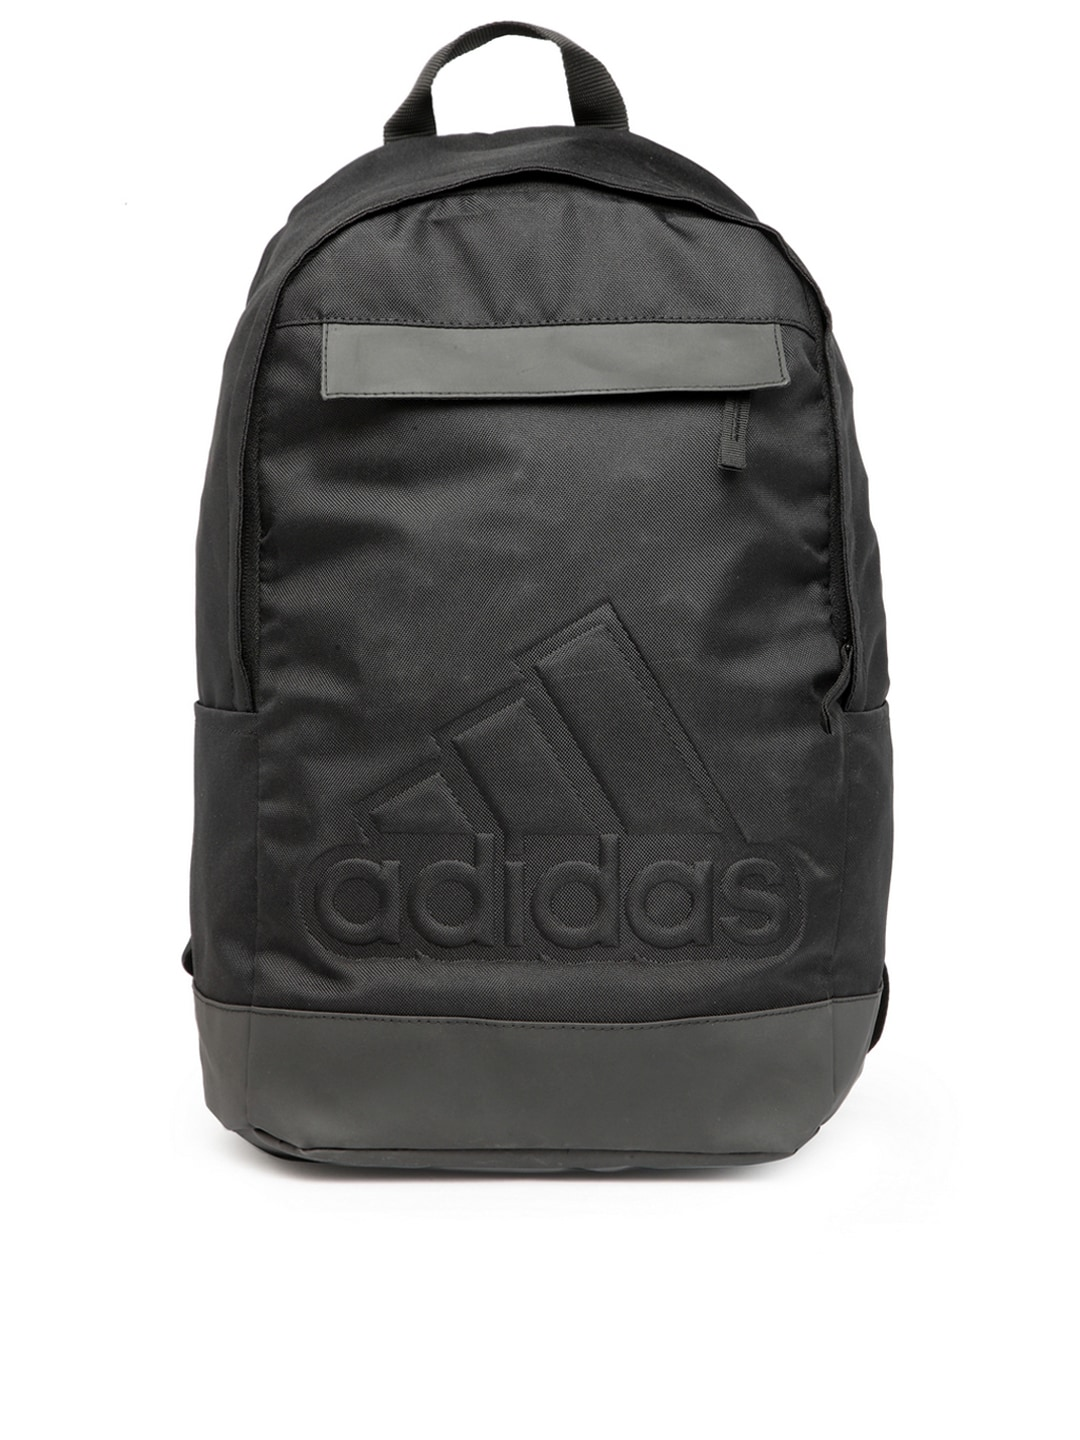 adidas Backpacks - Buy adidas Backpacks Online in India